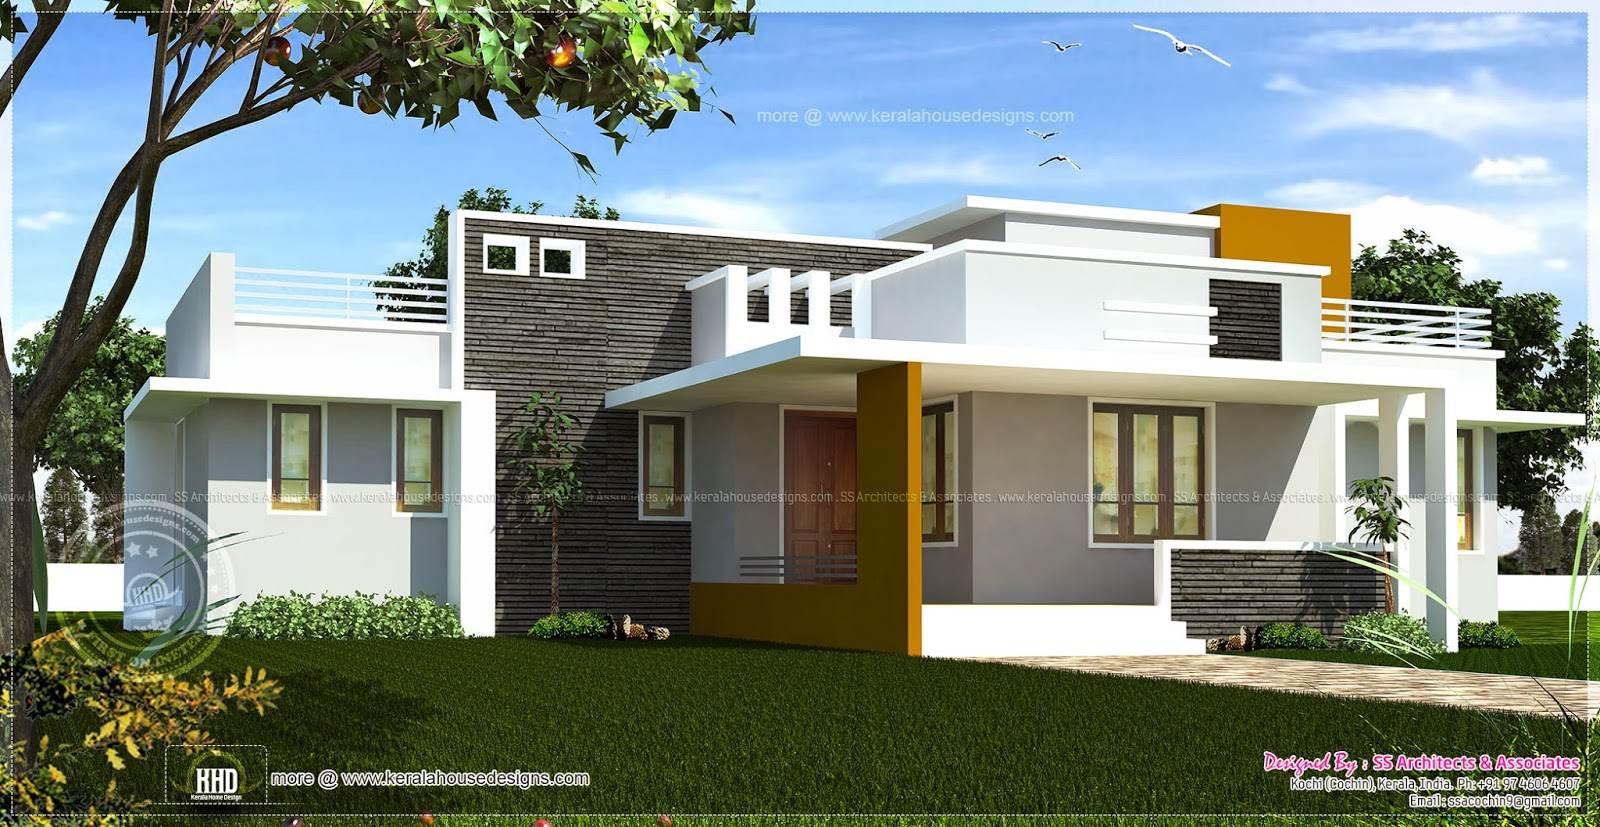 Single floor contemporary house design kerala home for Modern single floor house designs